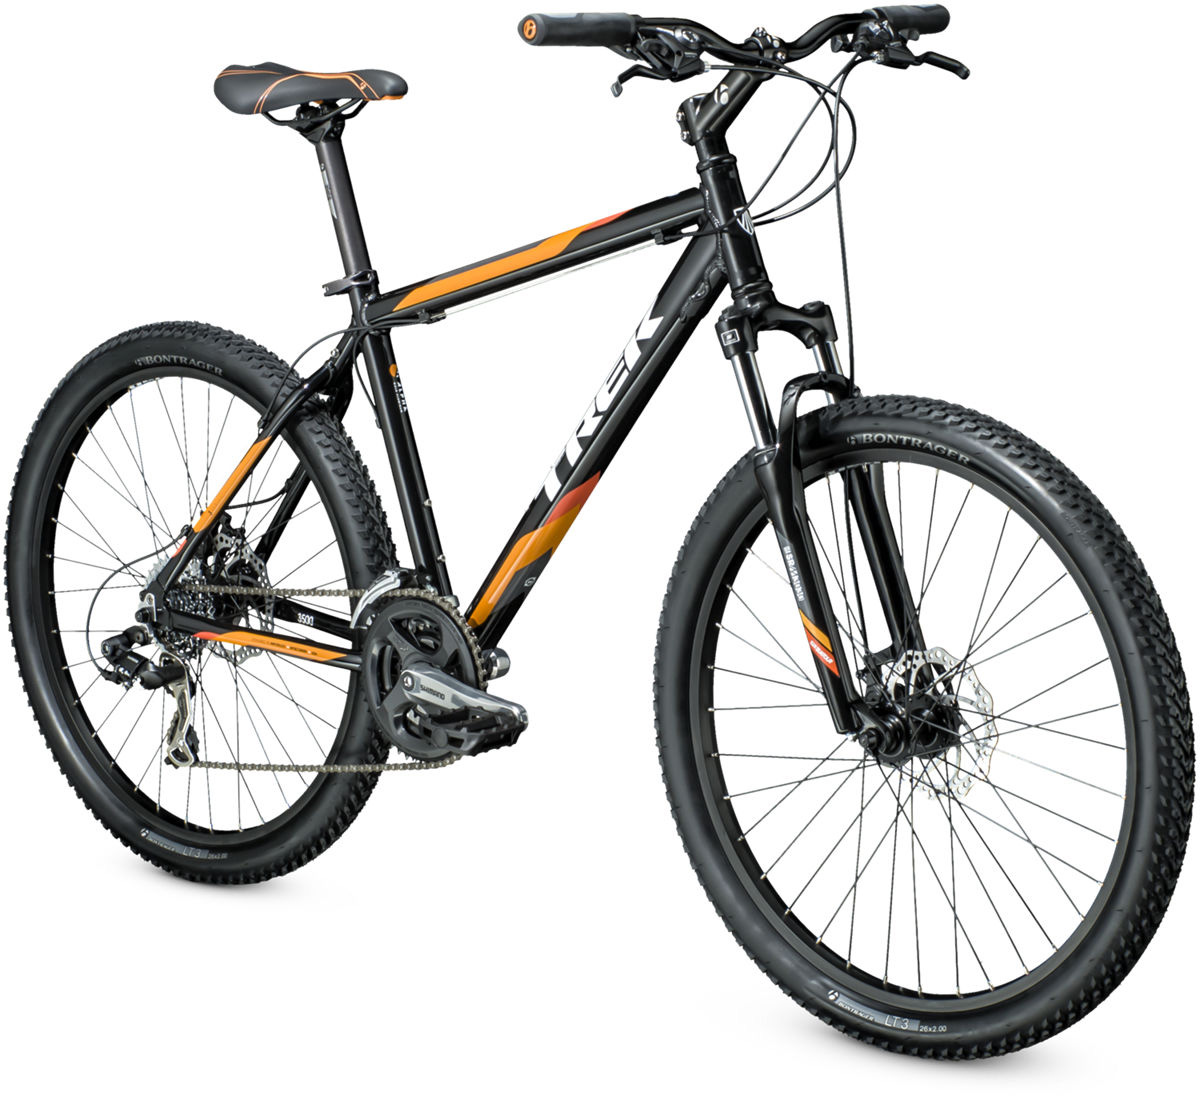 Ireland's Premier Online Bicycle Register: Stolen Bike - Trek 3500 Hardtail